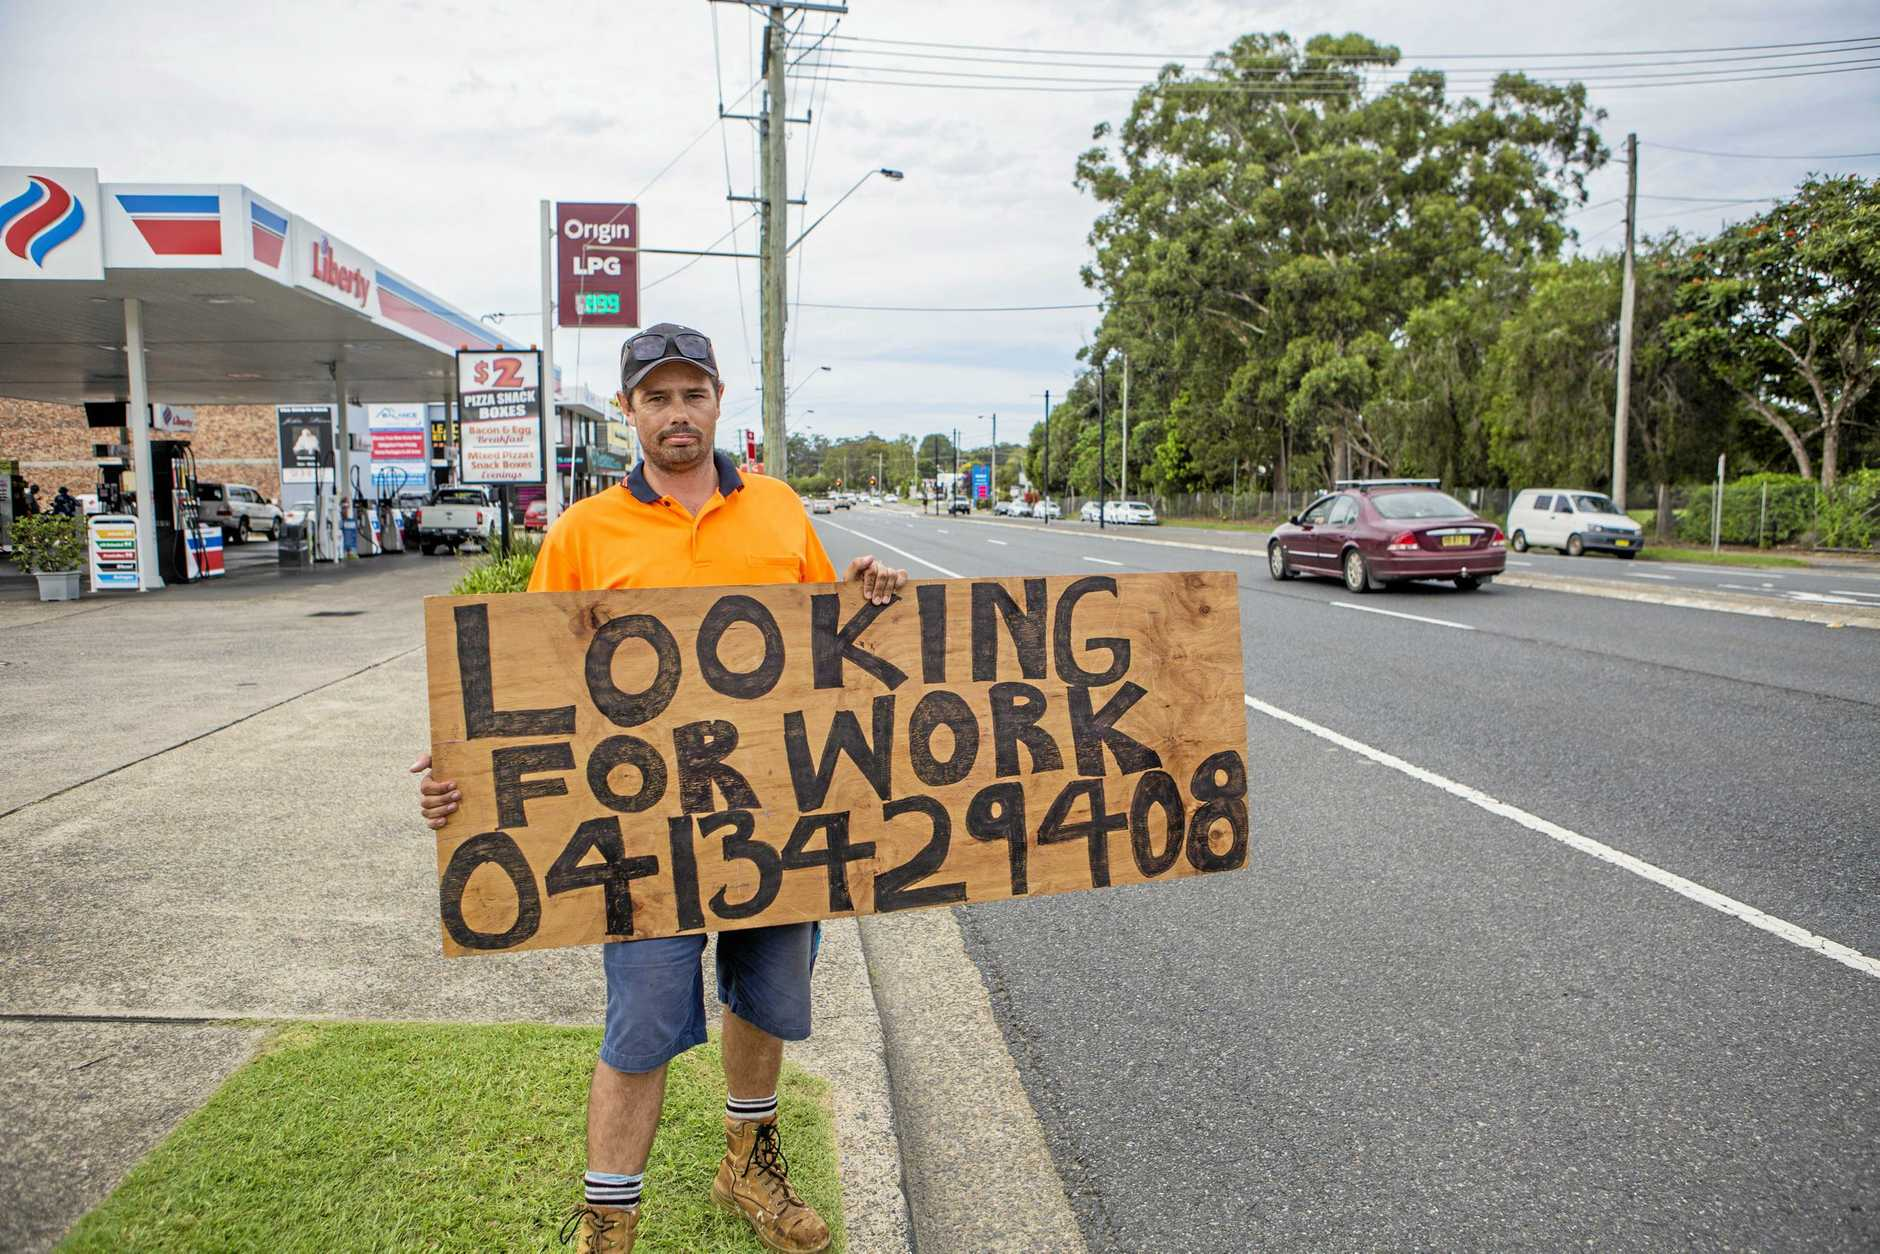 IT PAID OFF: Jobseeker and father-of-five David Lennard scored seven job offers after standing outside the Bailey Centre today calling for work.